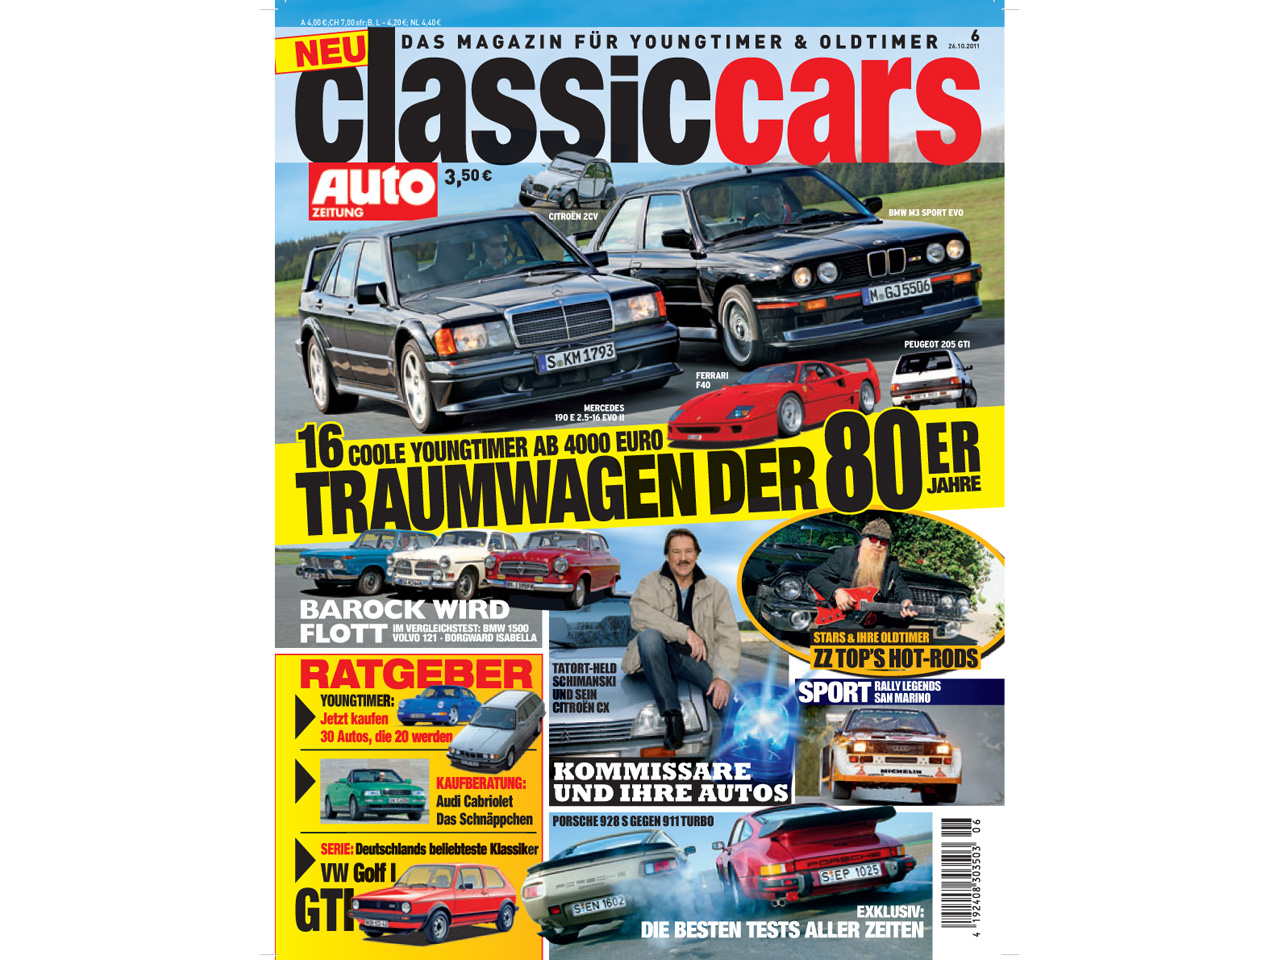 classic cars das neue magazin f r youngtimer und oldtimer. Black Bedroom Furniture Sets. Home Design Ideas